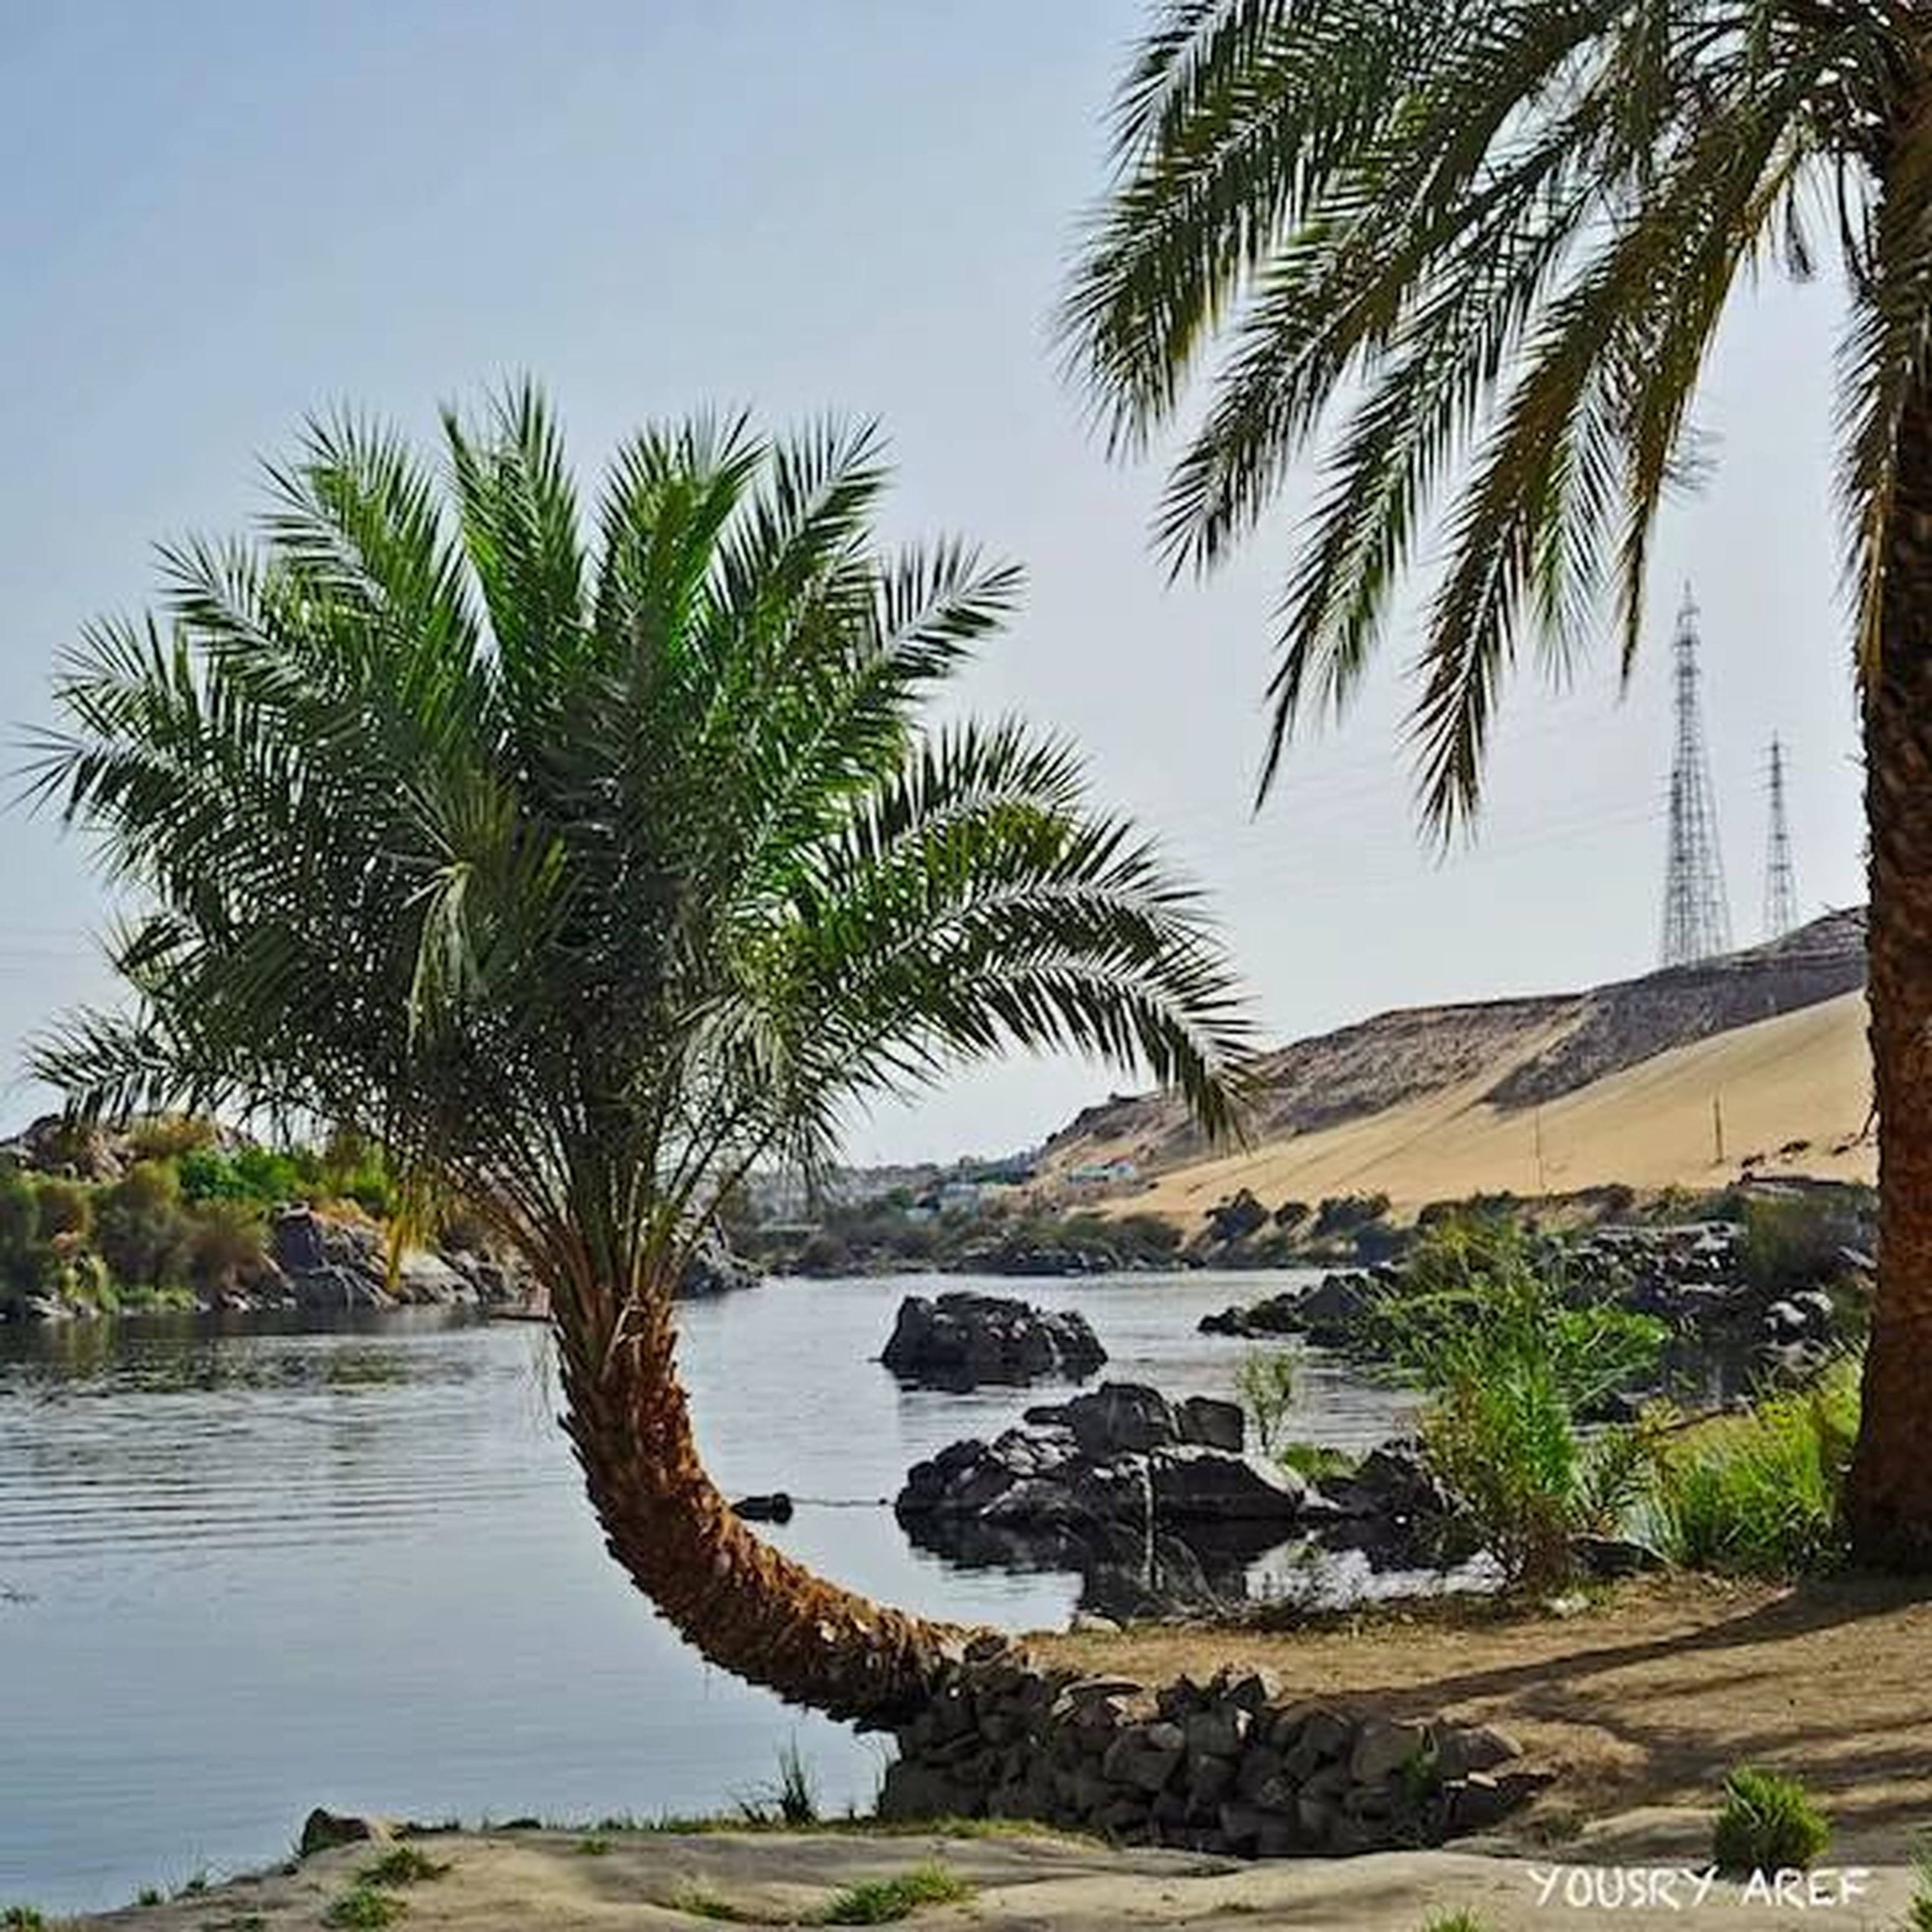 tree, palm tree, water, tranquil scene, tranquility, scenics, clear sky, nature, beauty in nature, beach, sea, growth, sky, shore, green color, tree trunk, sand, rock - object, mountain, idyllic